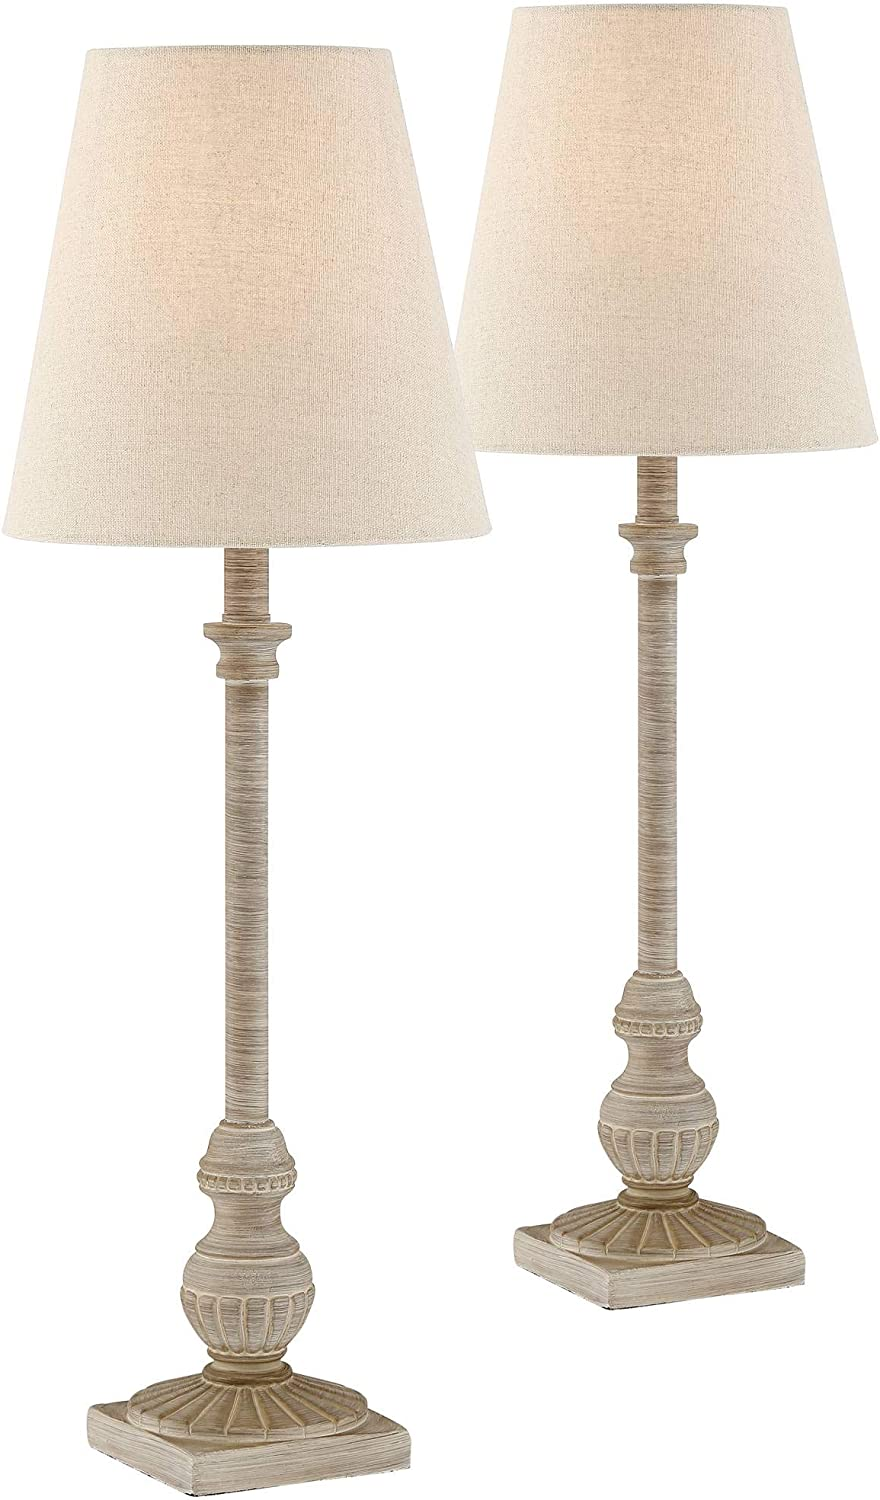 Loreno Traditional Buffet Table Lamps Set of 2 Whitewashed Beige Tapered Shade for Dining Room - Regency Hill